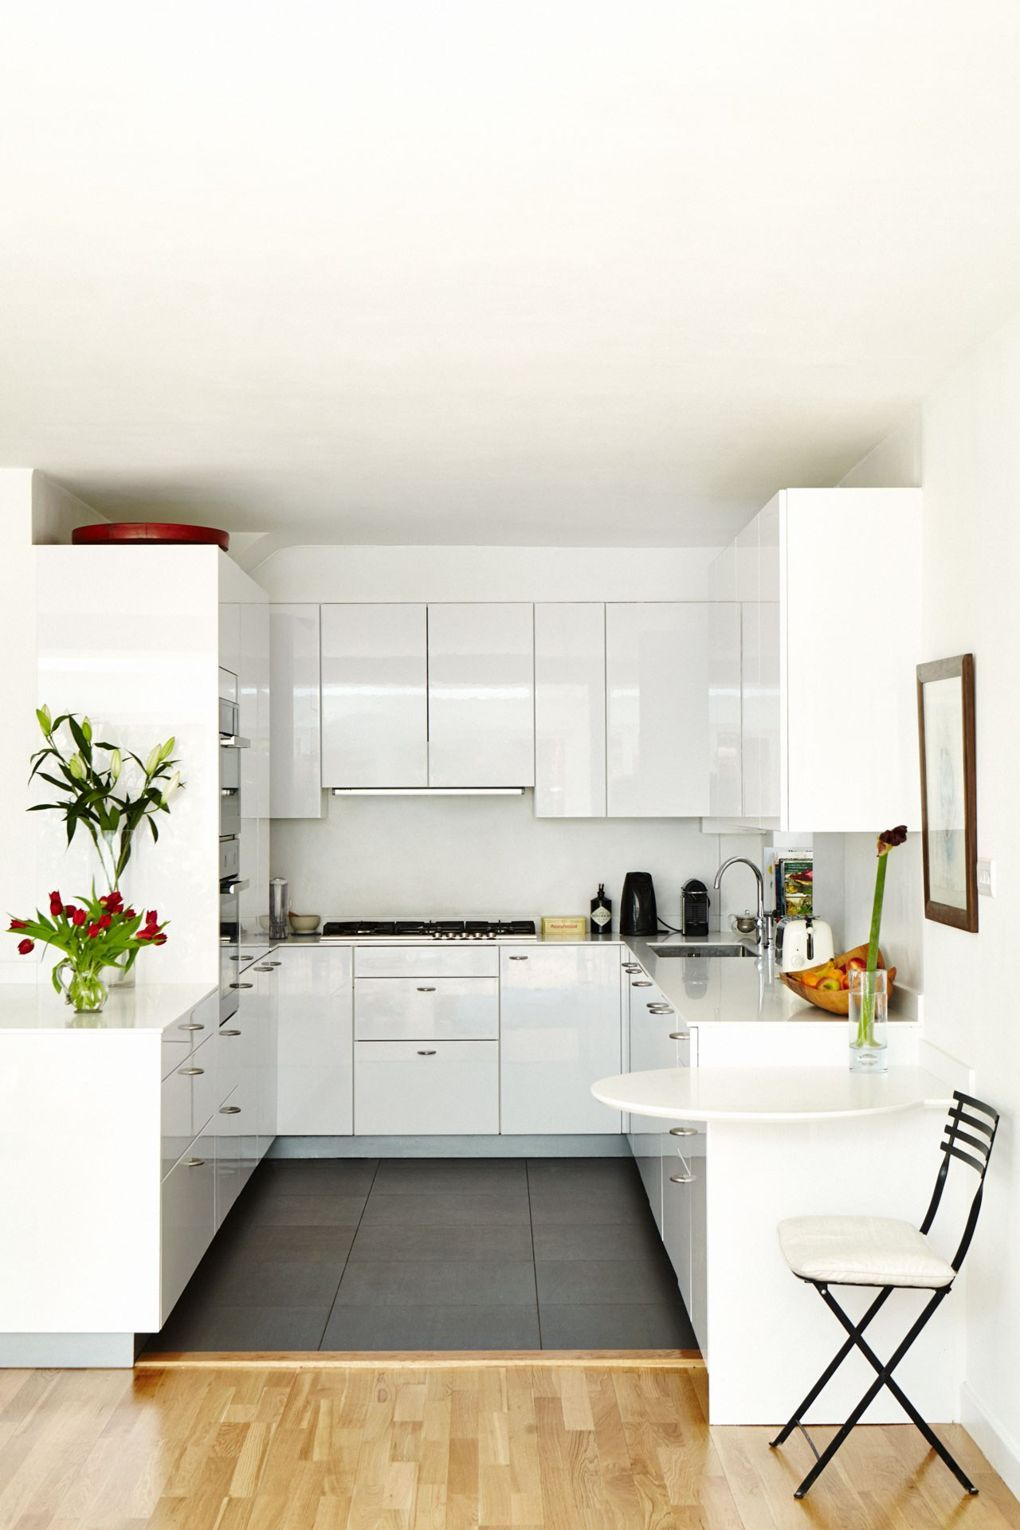 white kitchens 20 fresh designs small modern kitchens on kitchen remodeling ideas and designs lowe s id=75118